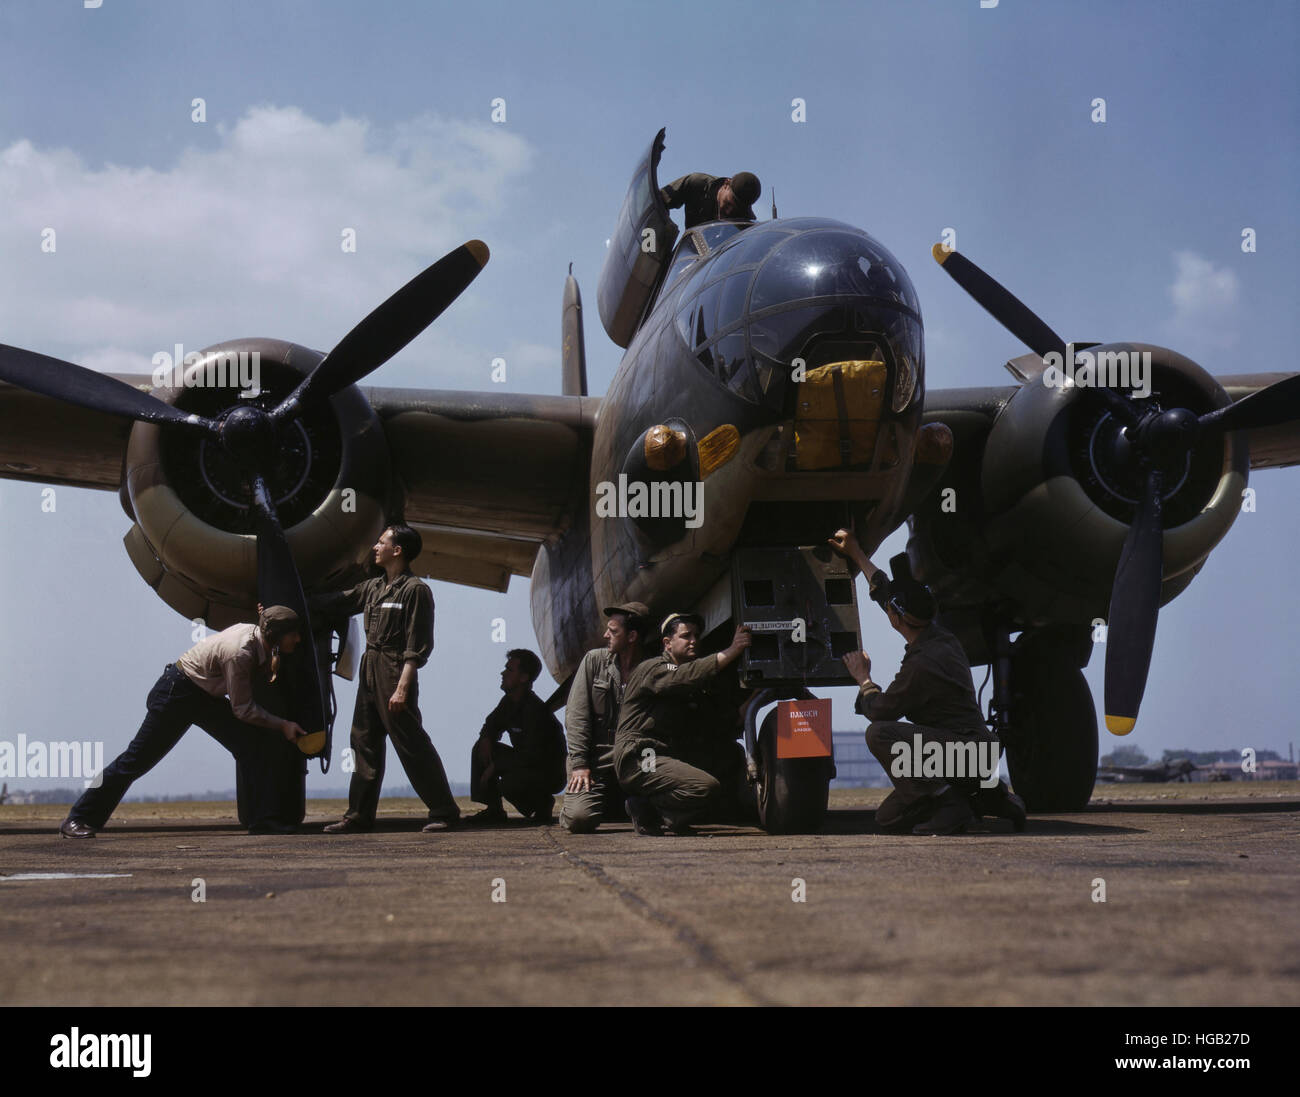 July 1942 - Servicing an A-20 bomber, Langley Field, Virginia. - Stock Image